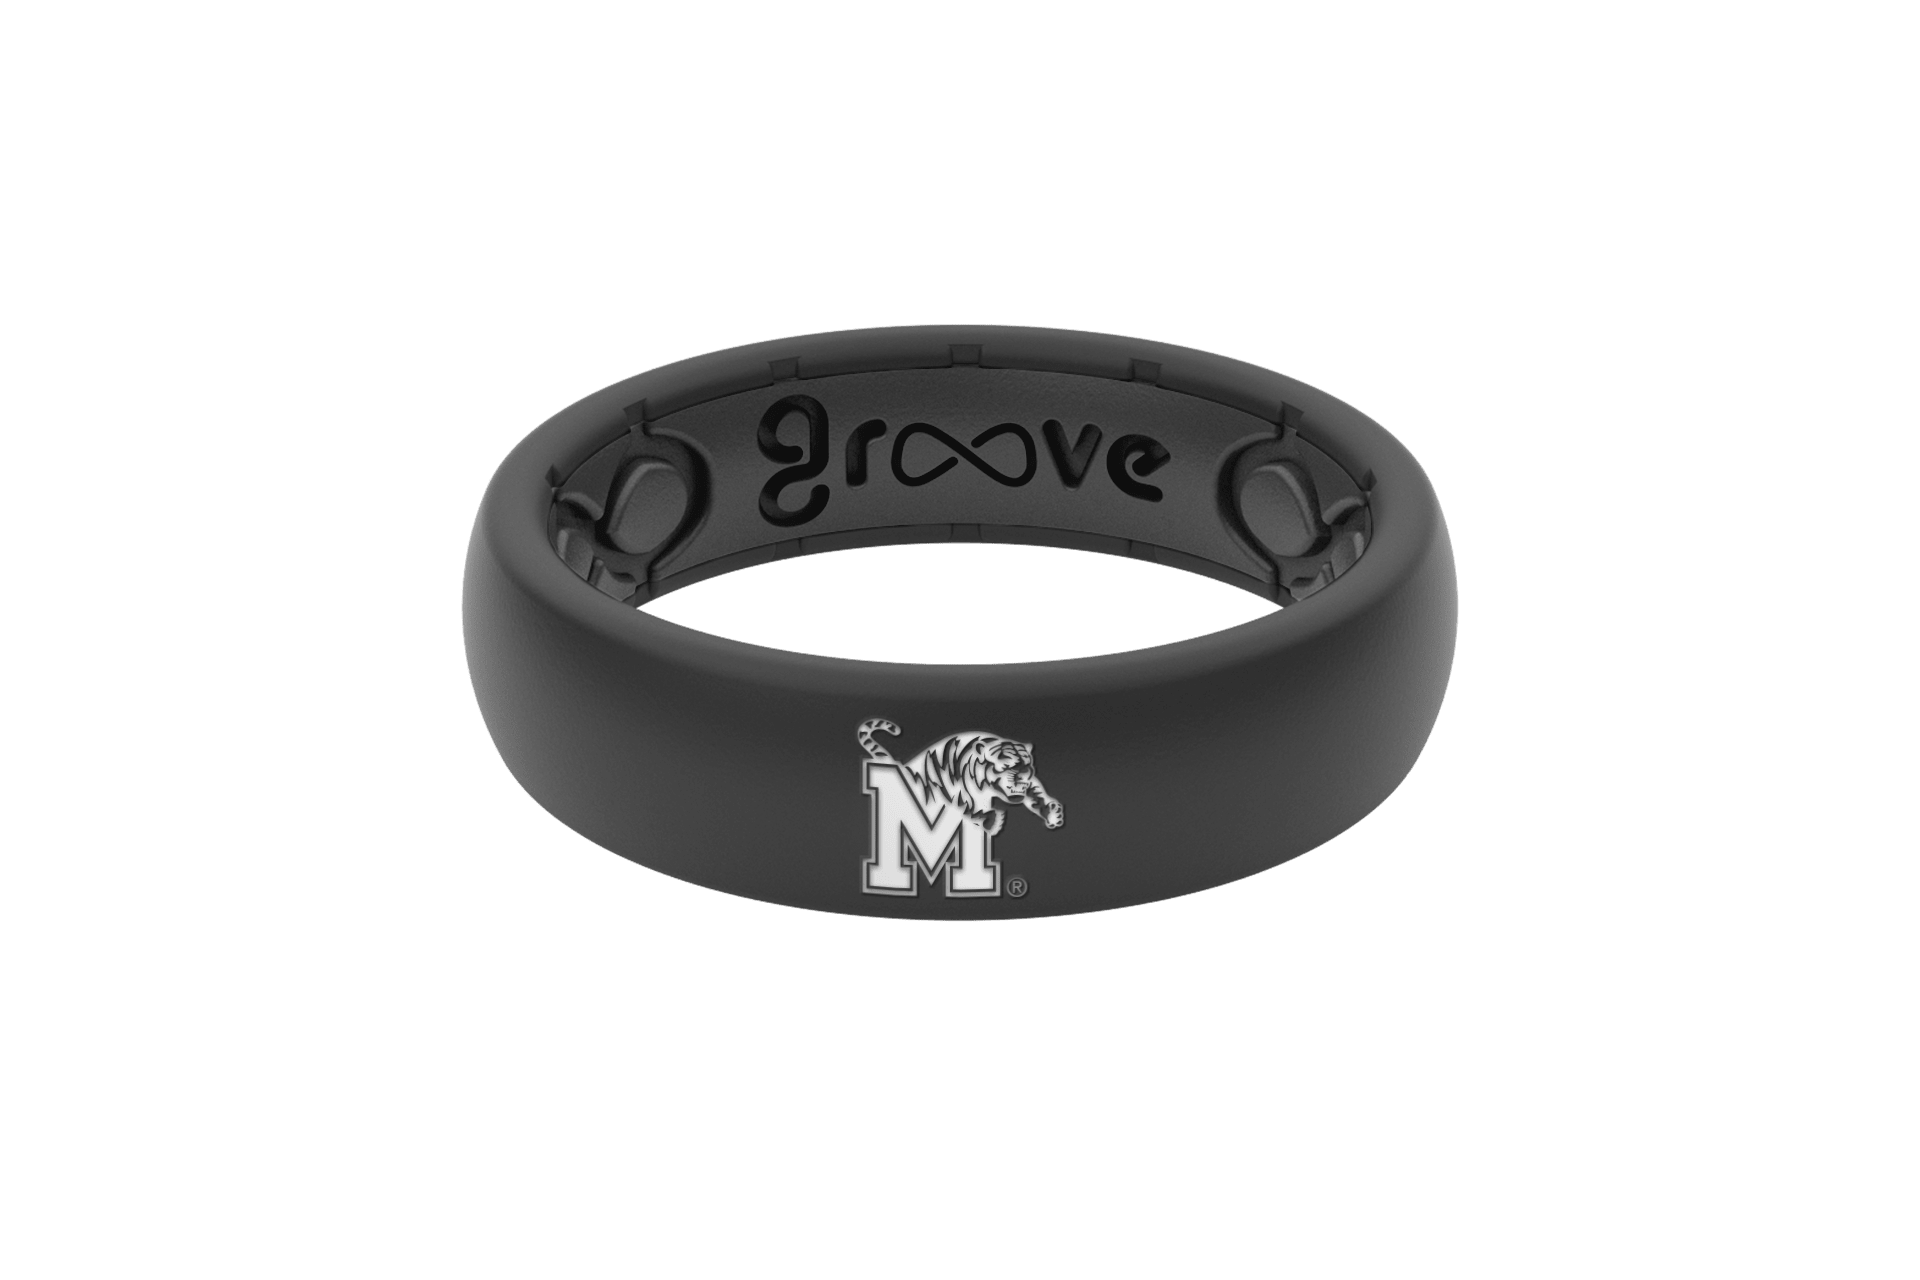 Thin College Memphis - Groove Life Silicone Wedding Rings